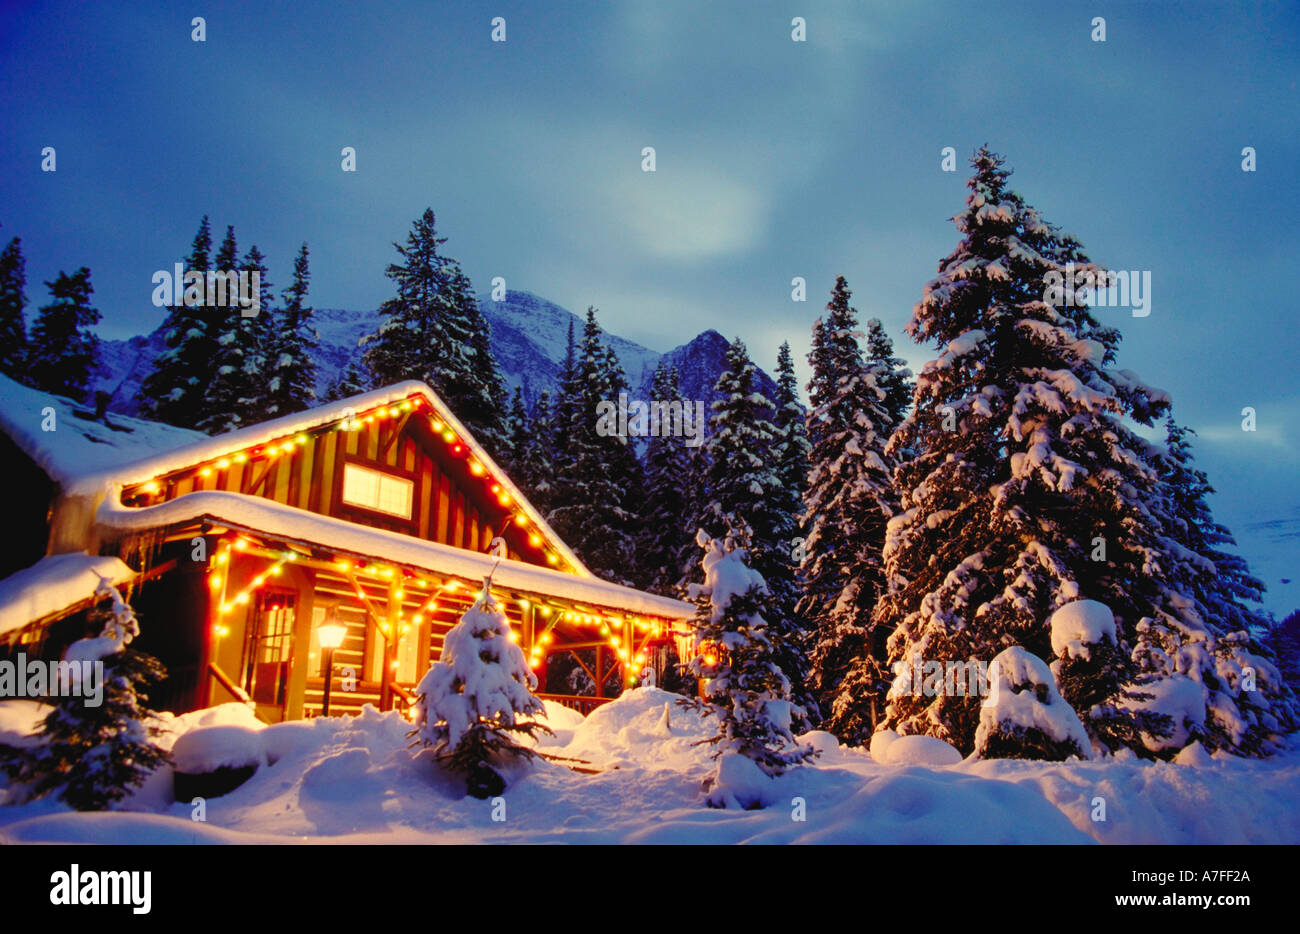 Christmas Vacation House Lights.Cabin In The Snow With Christmas Lights At Night And Snow